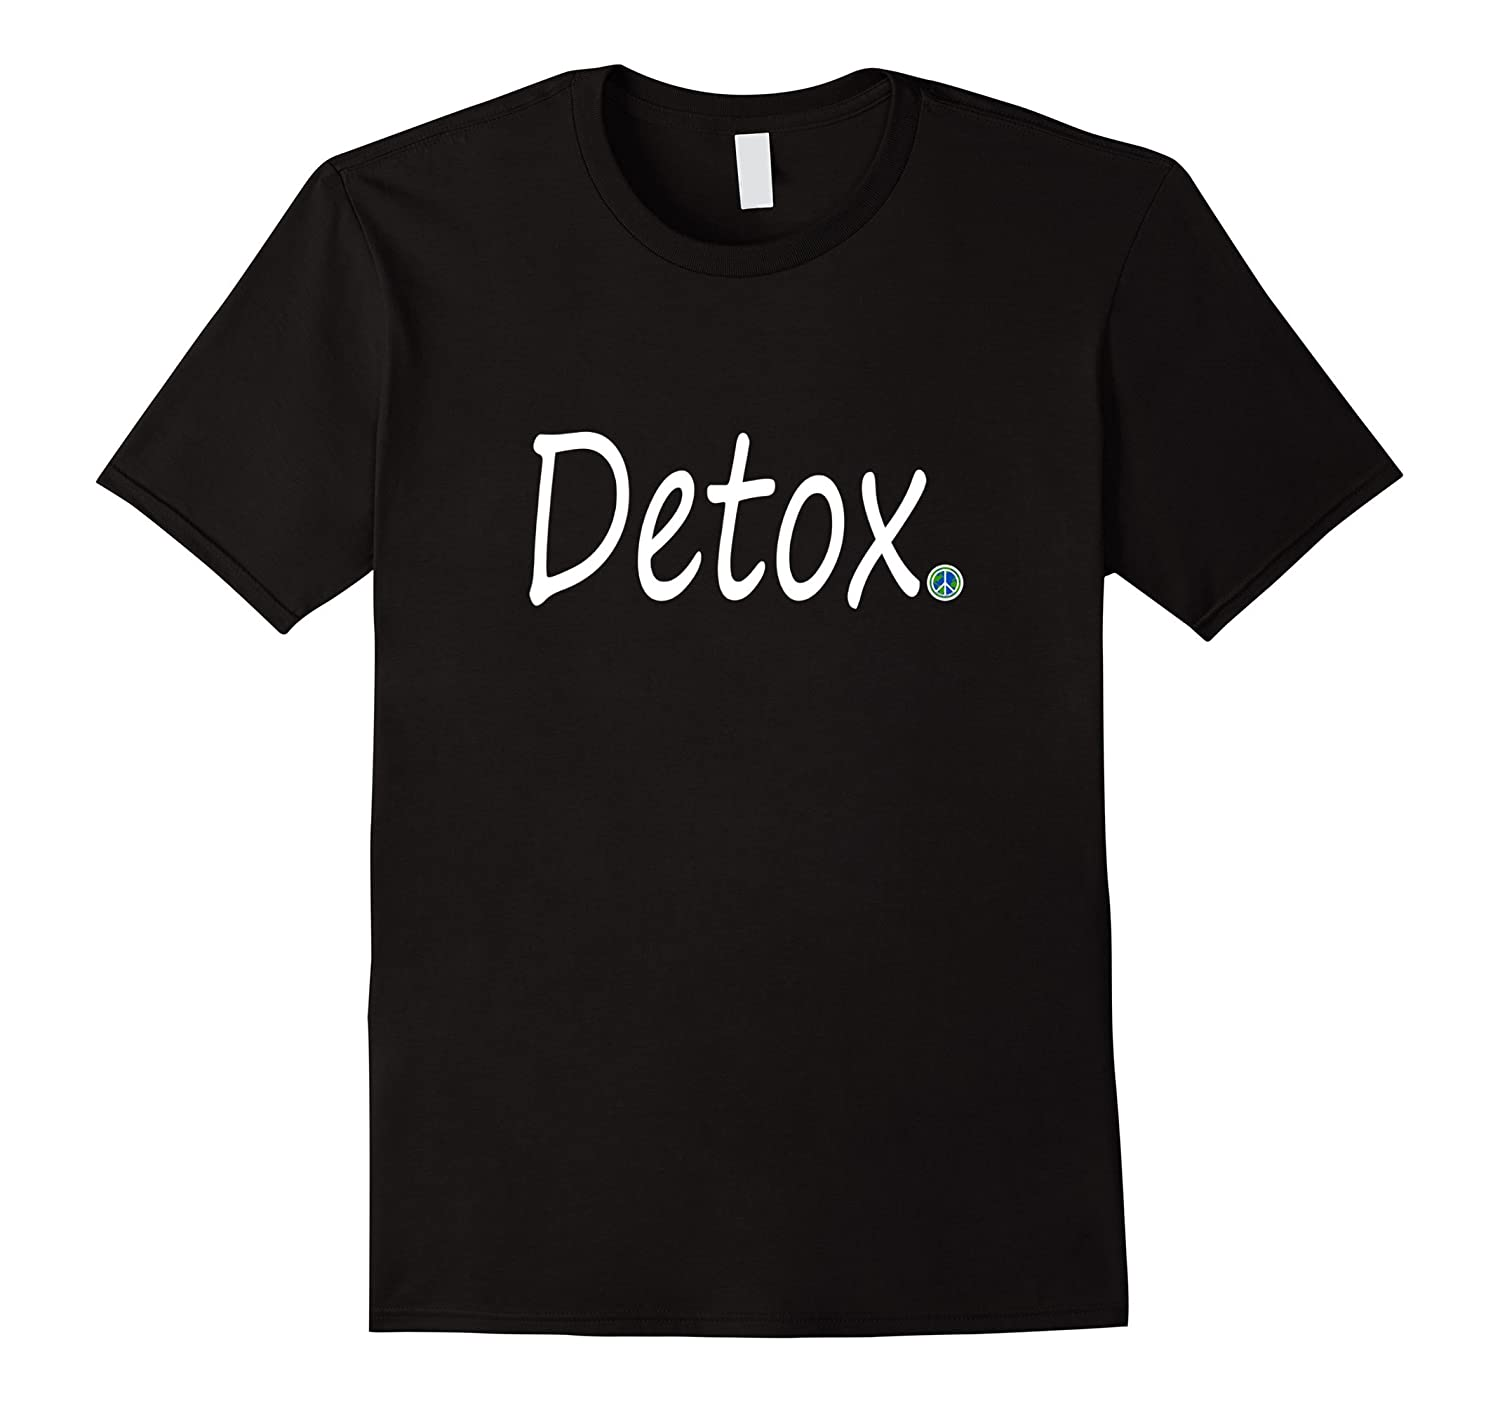 Inspirational Journey Tshirts Detox World Peace Point-Vaci